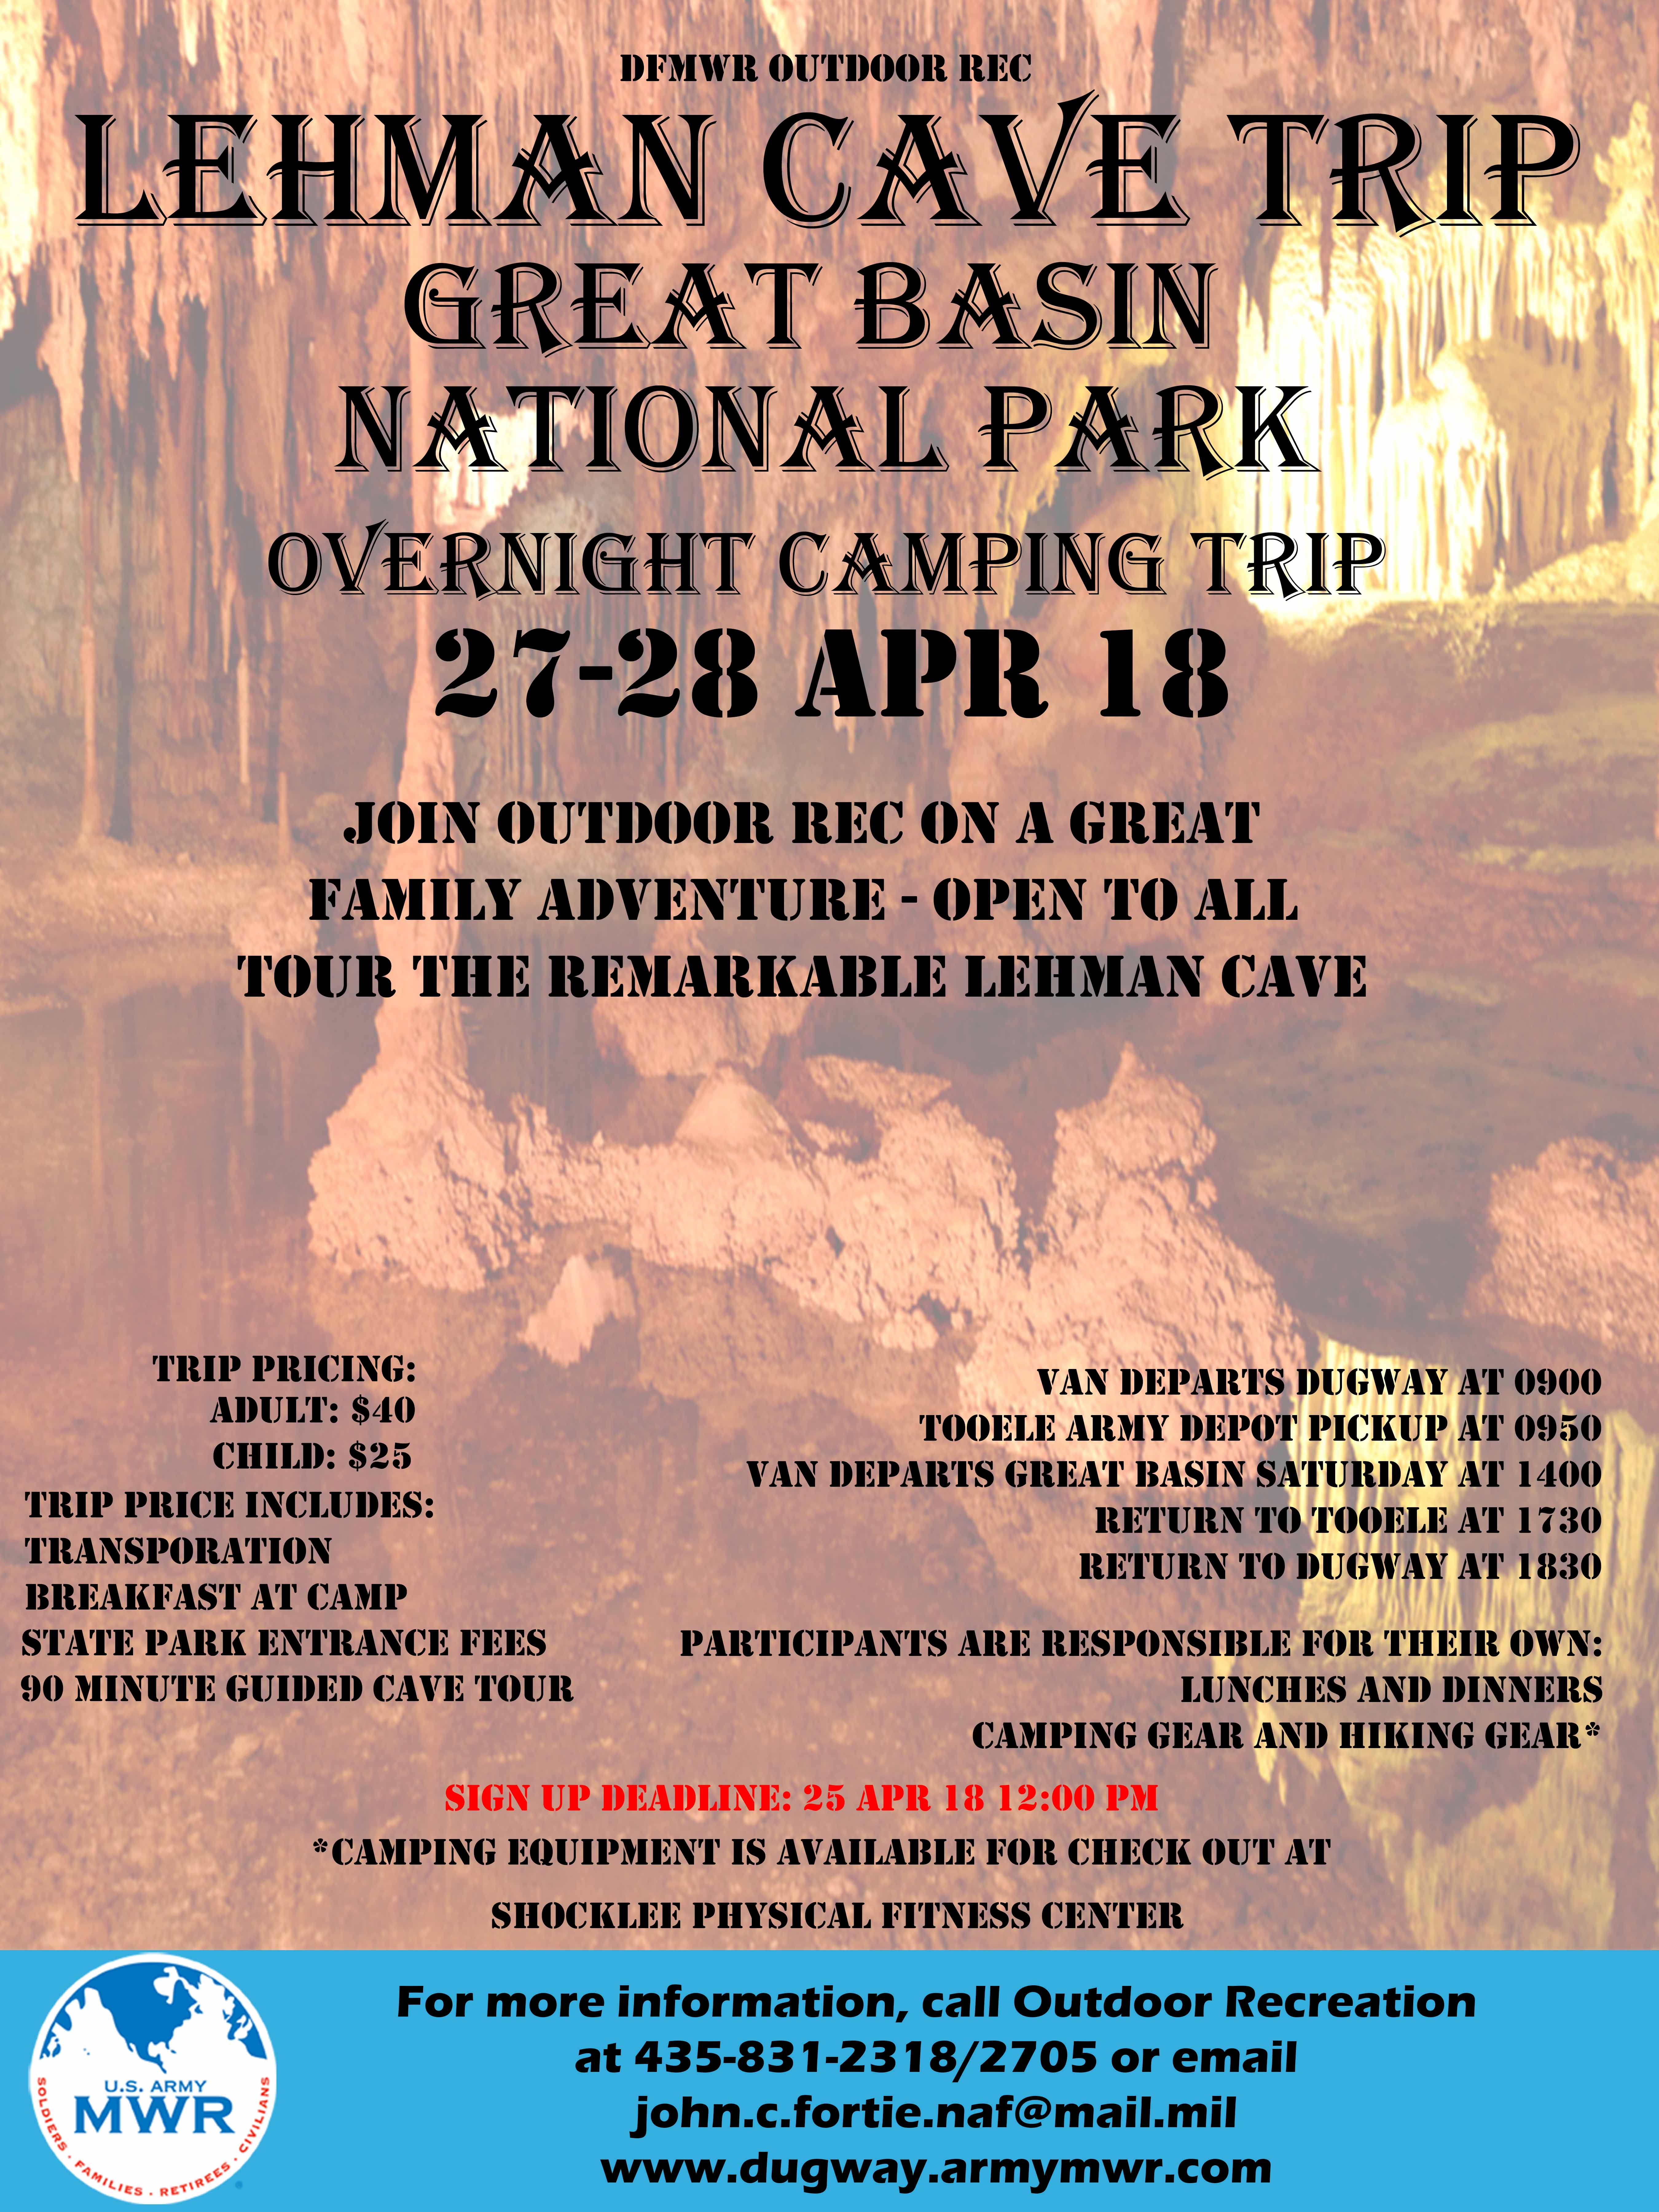 Lehman Cave Trip Great Basin National Park Overnight Camping